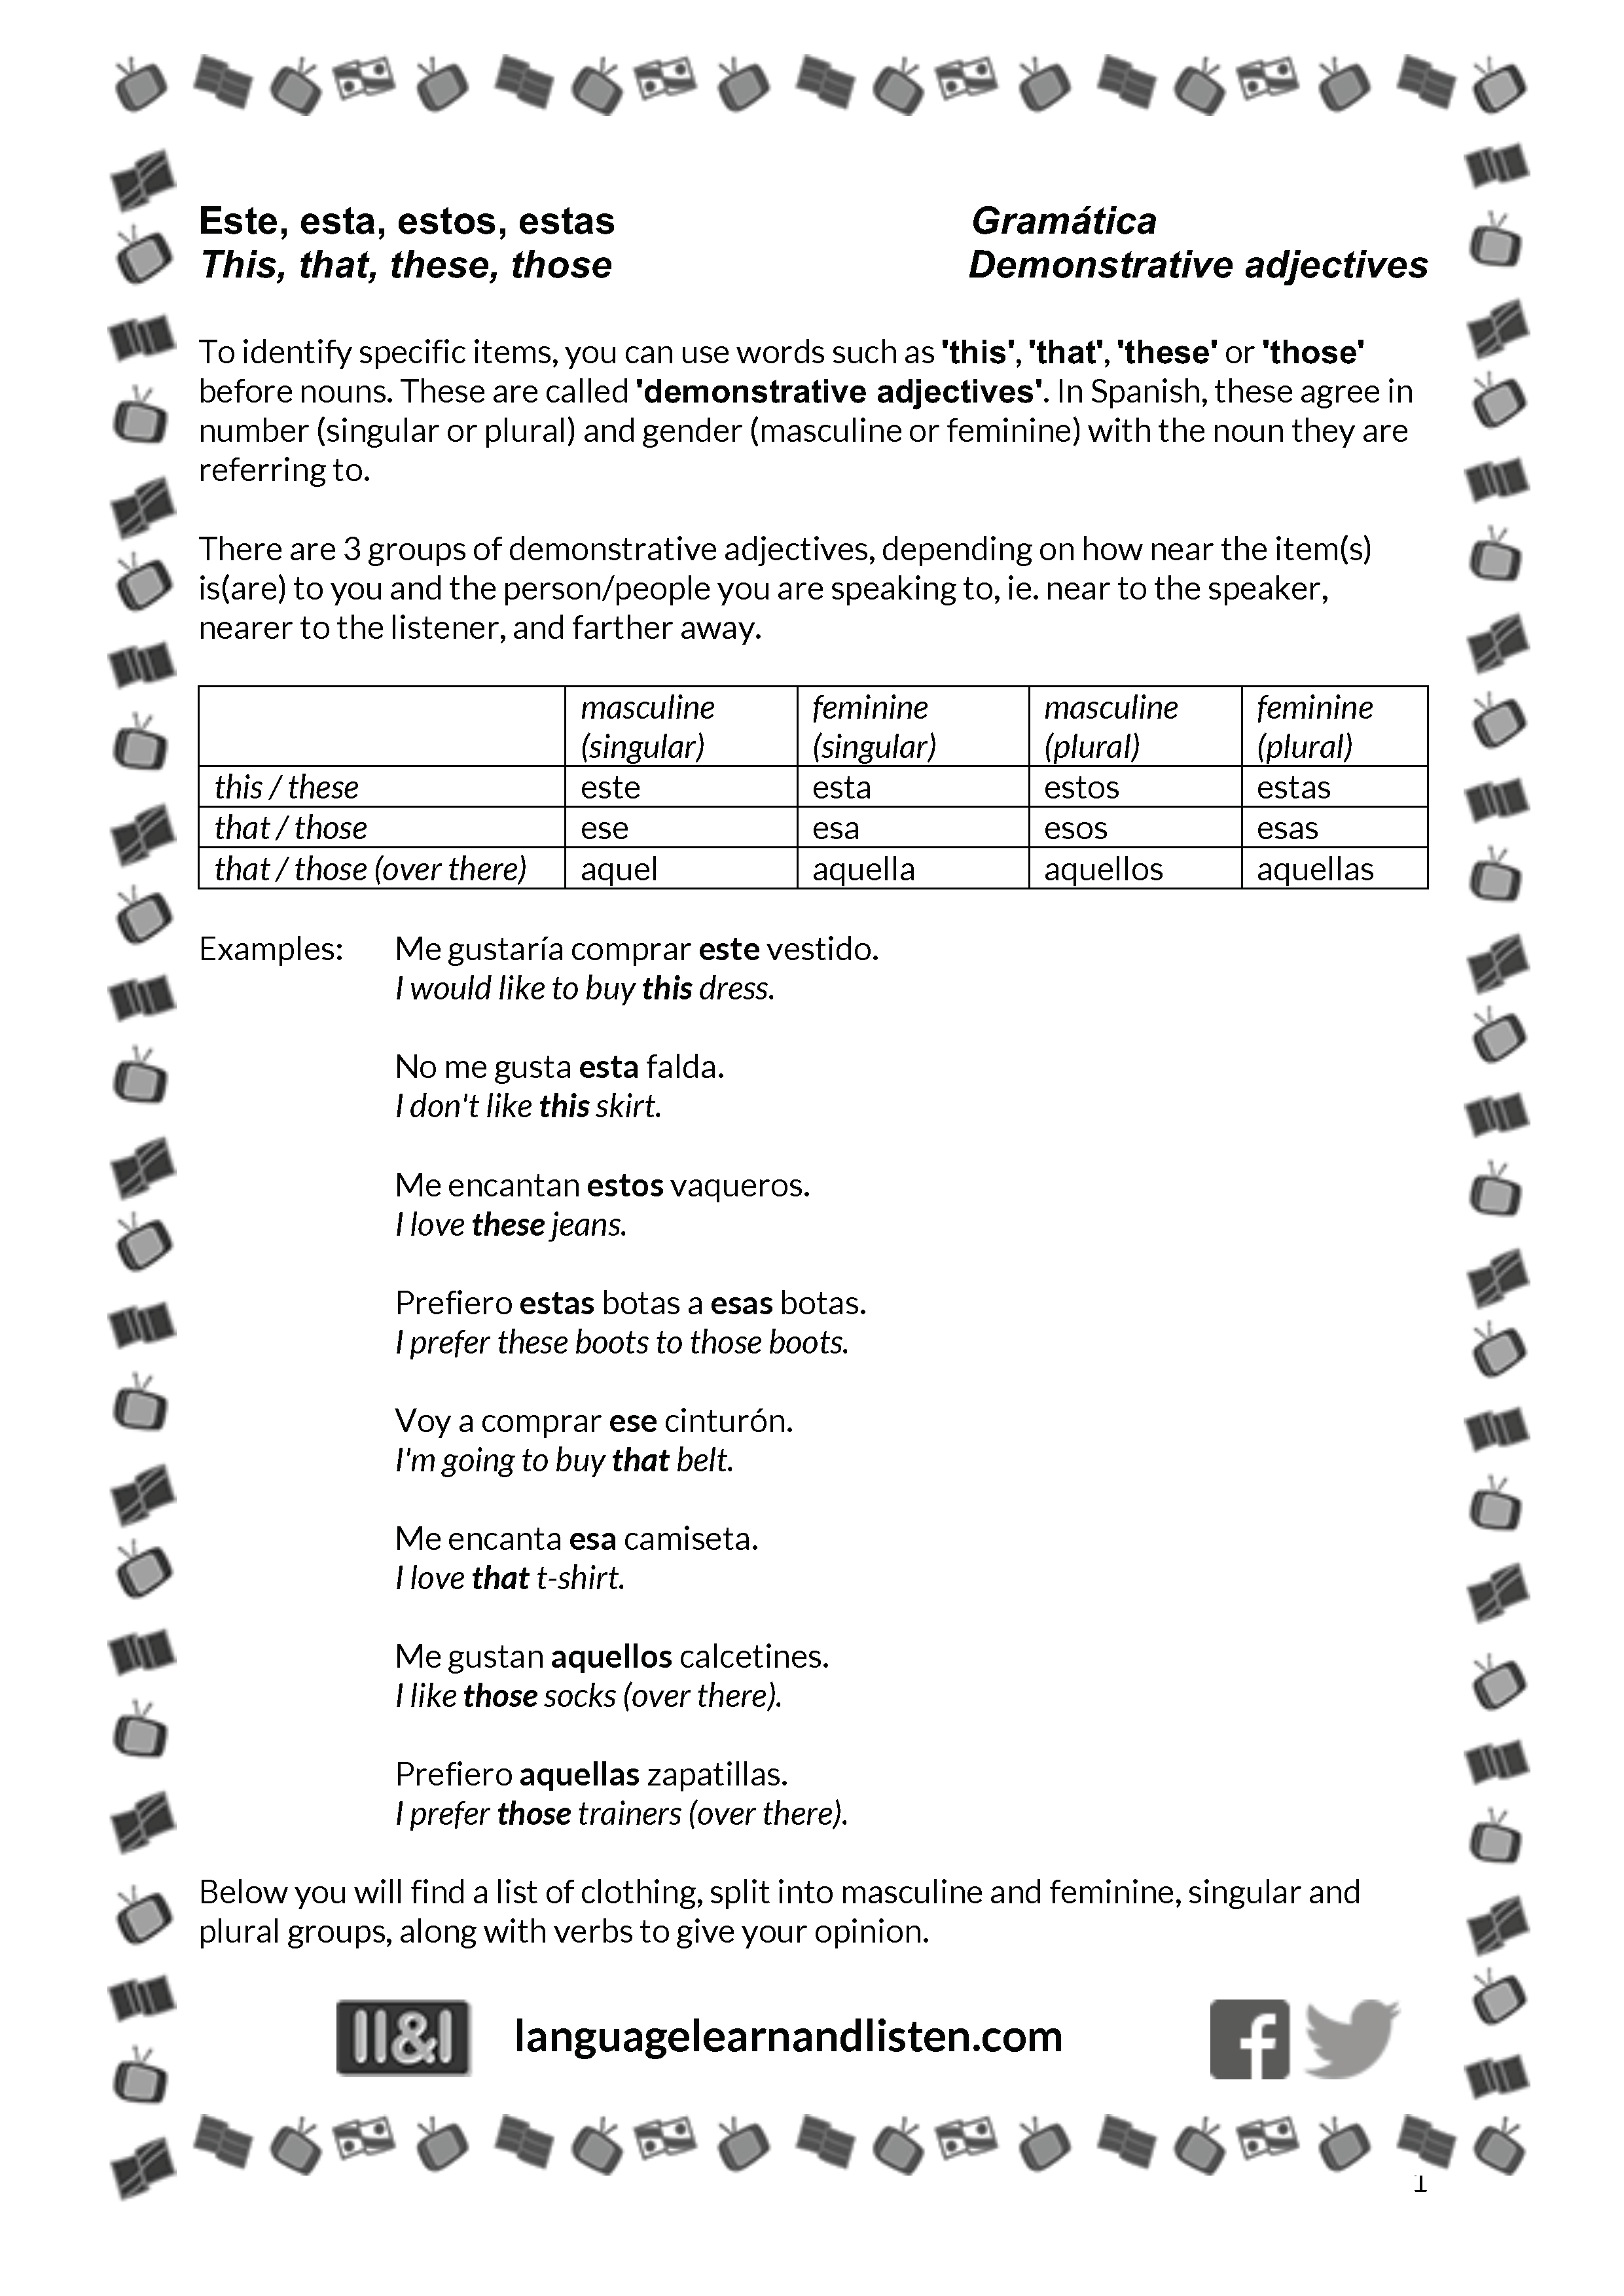 Spanish - Demonstrative adjectives with opinions and clothes Throughout Demonstrative Adjectives Spanish Worksheet